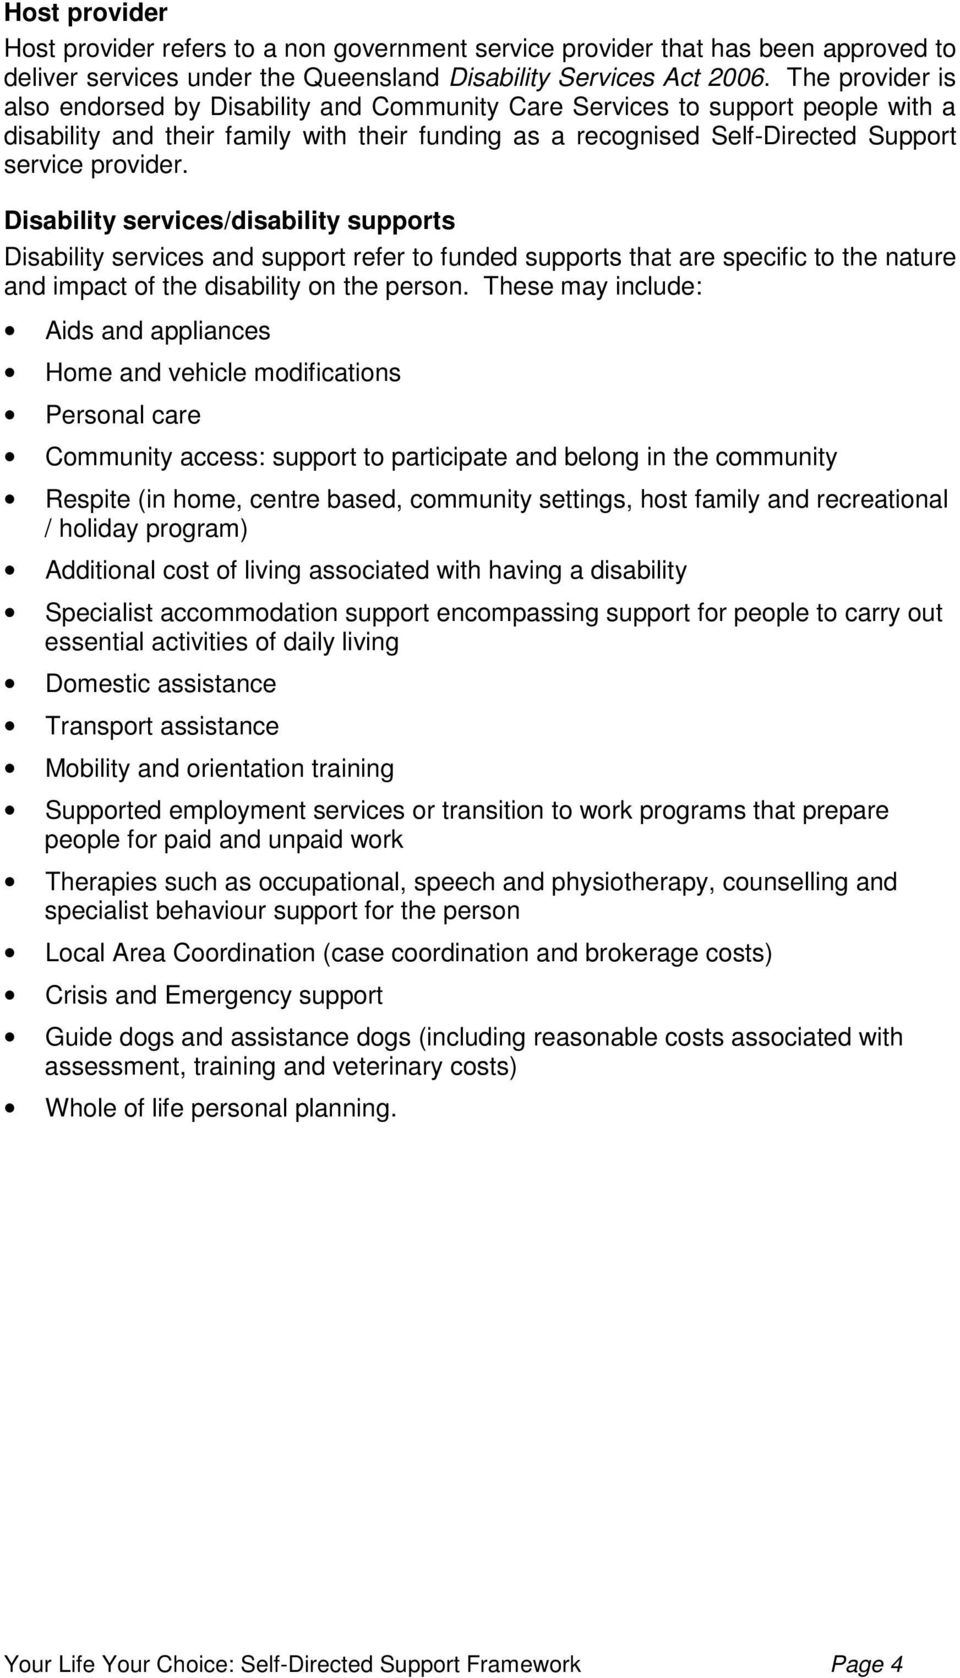 Disability services/disability supports Disability services and support refer to funded supports that are specific to the nature and impact of the disability on the person.